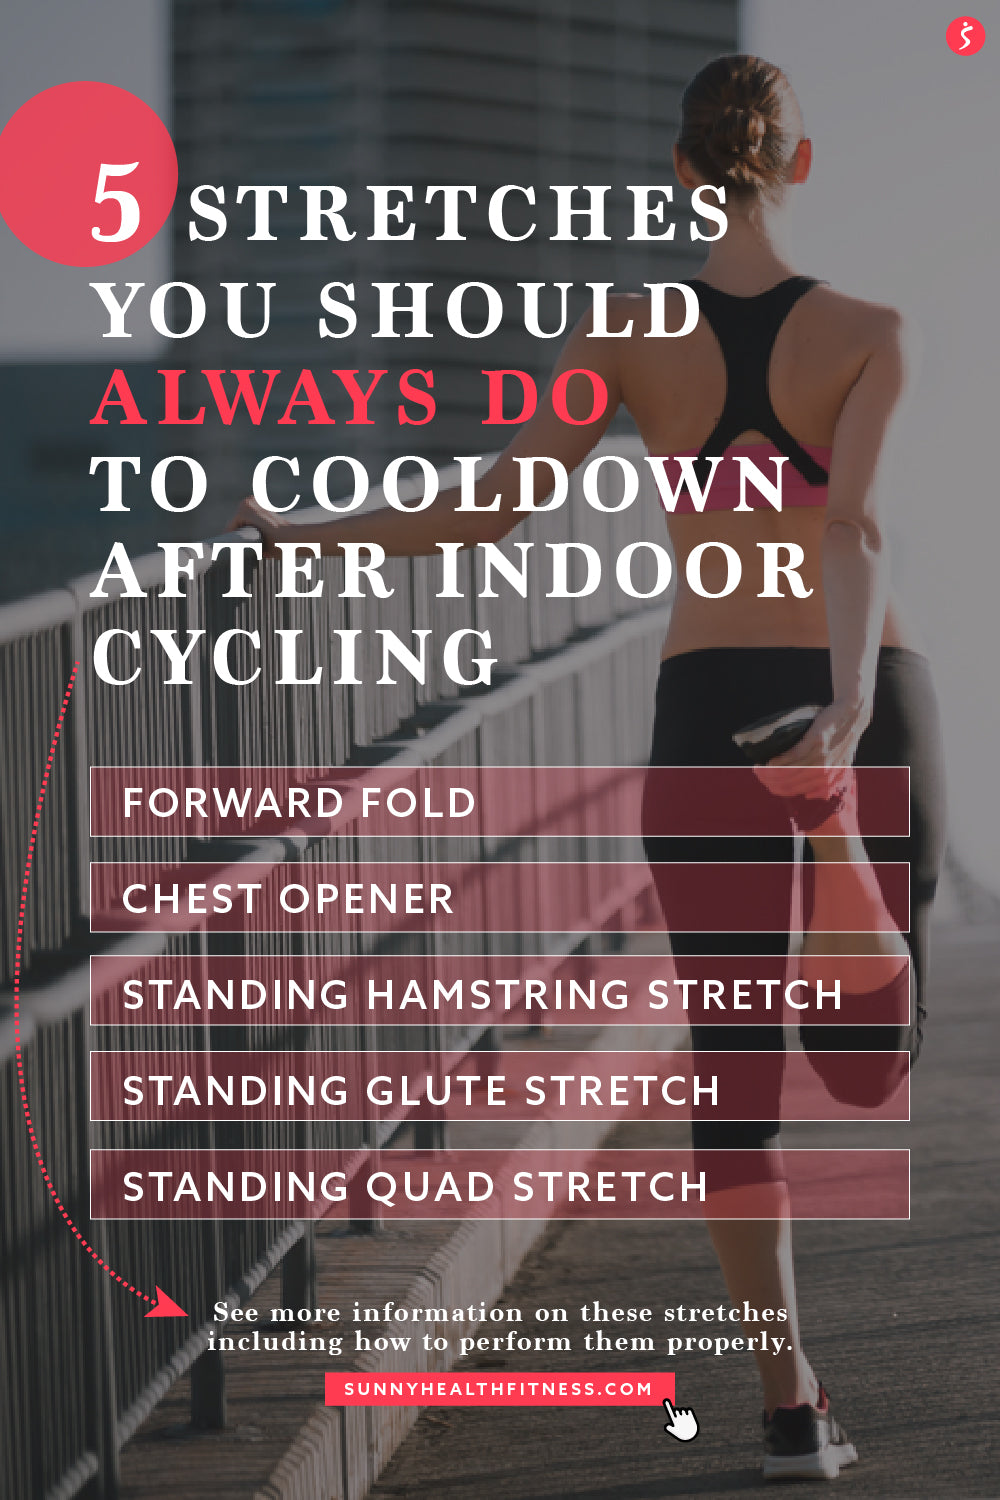 5 Stretche to Cooldown After Indoor Cycling Infographic